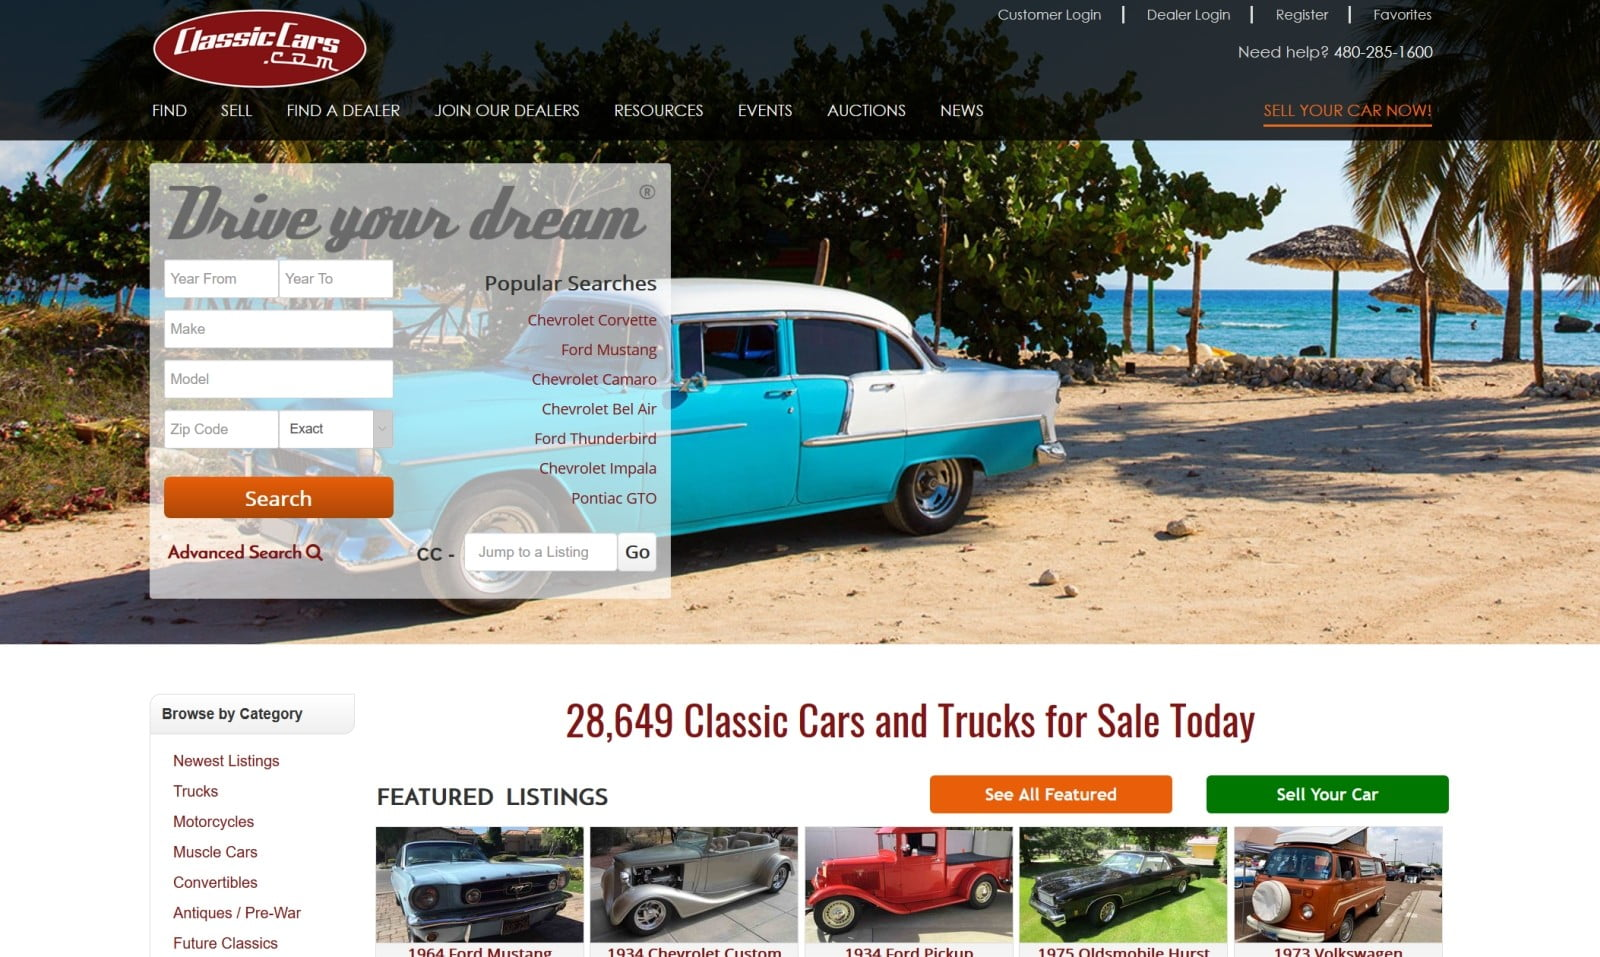 The Best Used Car Sites | Autotrader, Craigslist, and More ...